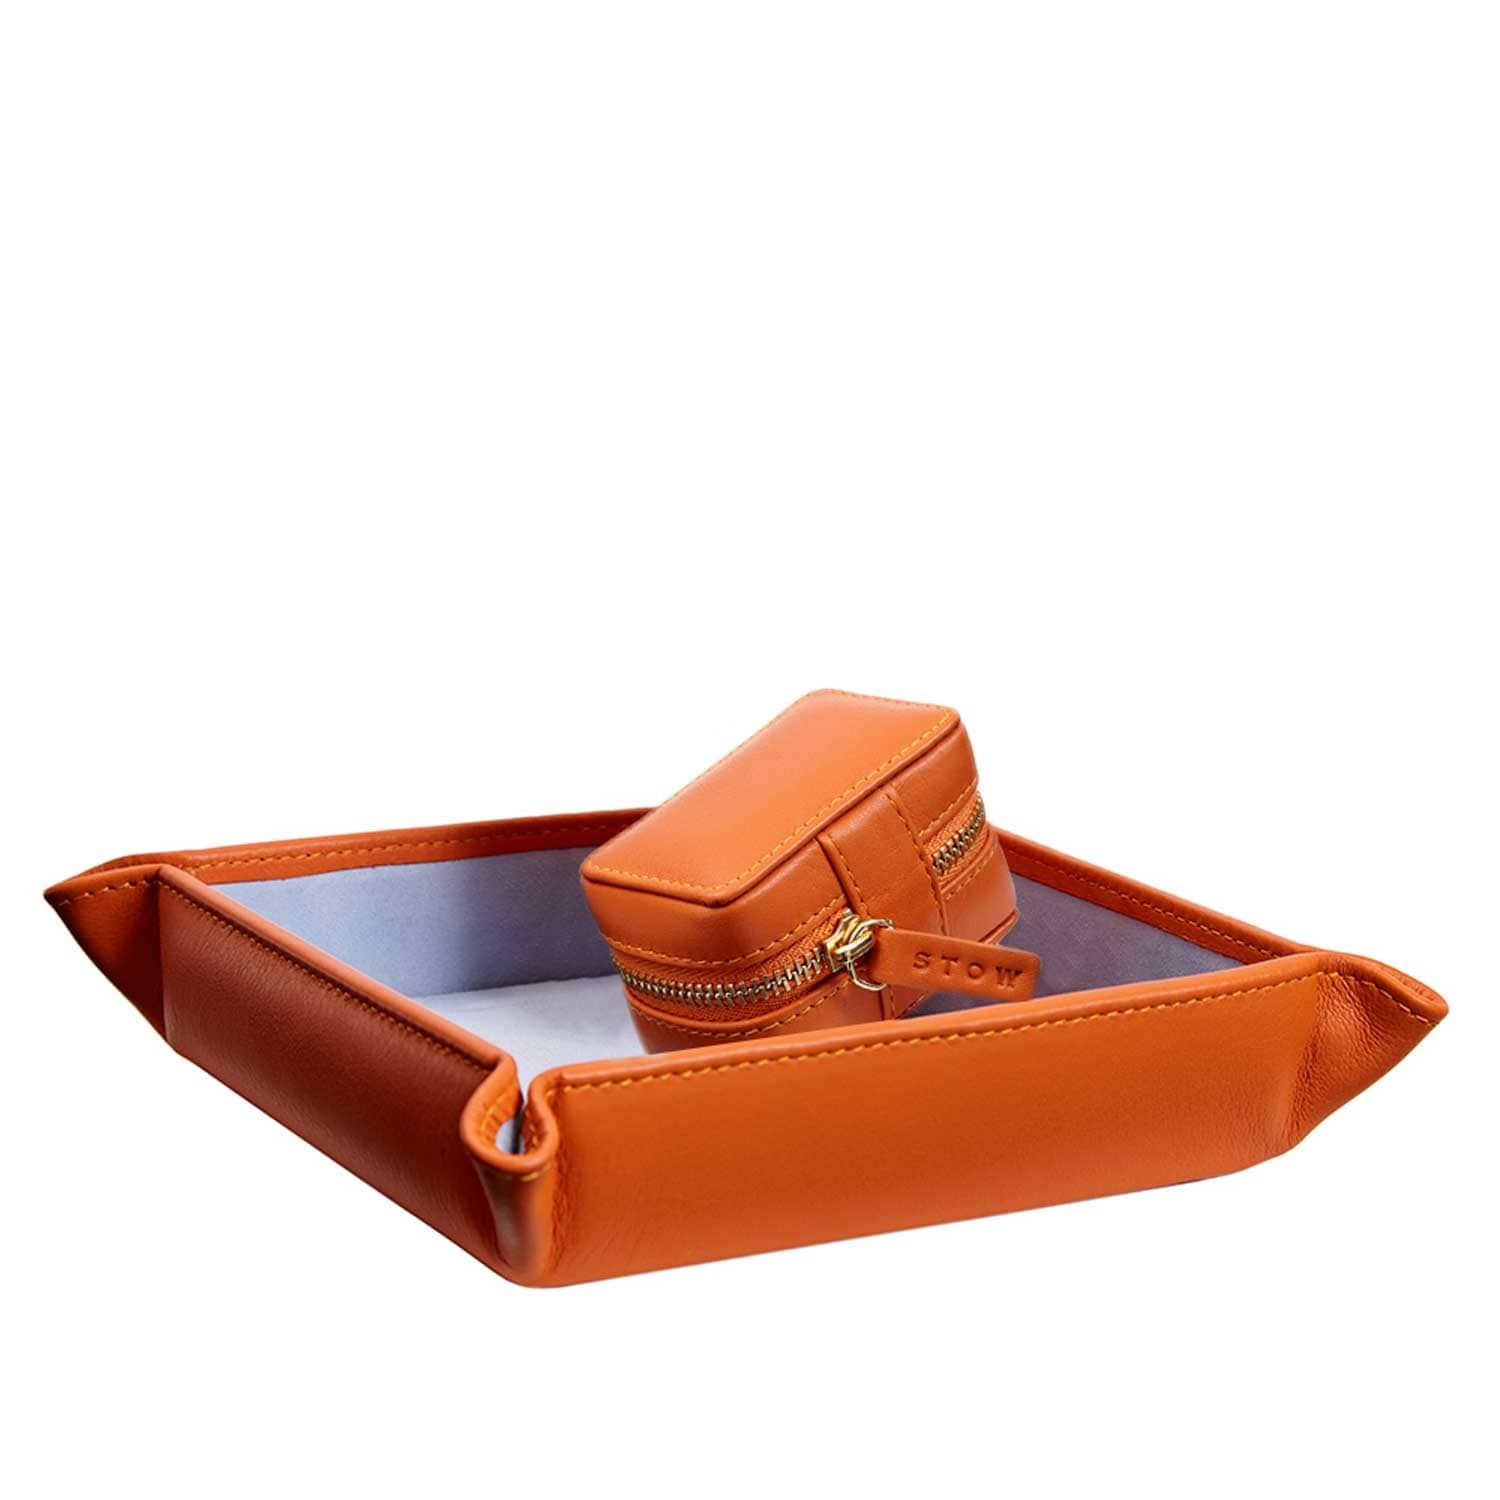 a58e2d950 Soft Leather Sanderson Coin Tray & Cufflink Box Gift Set Amber Orange